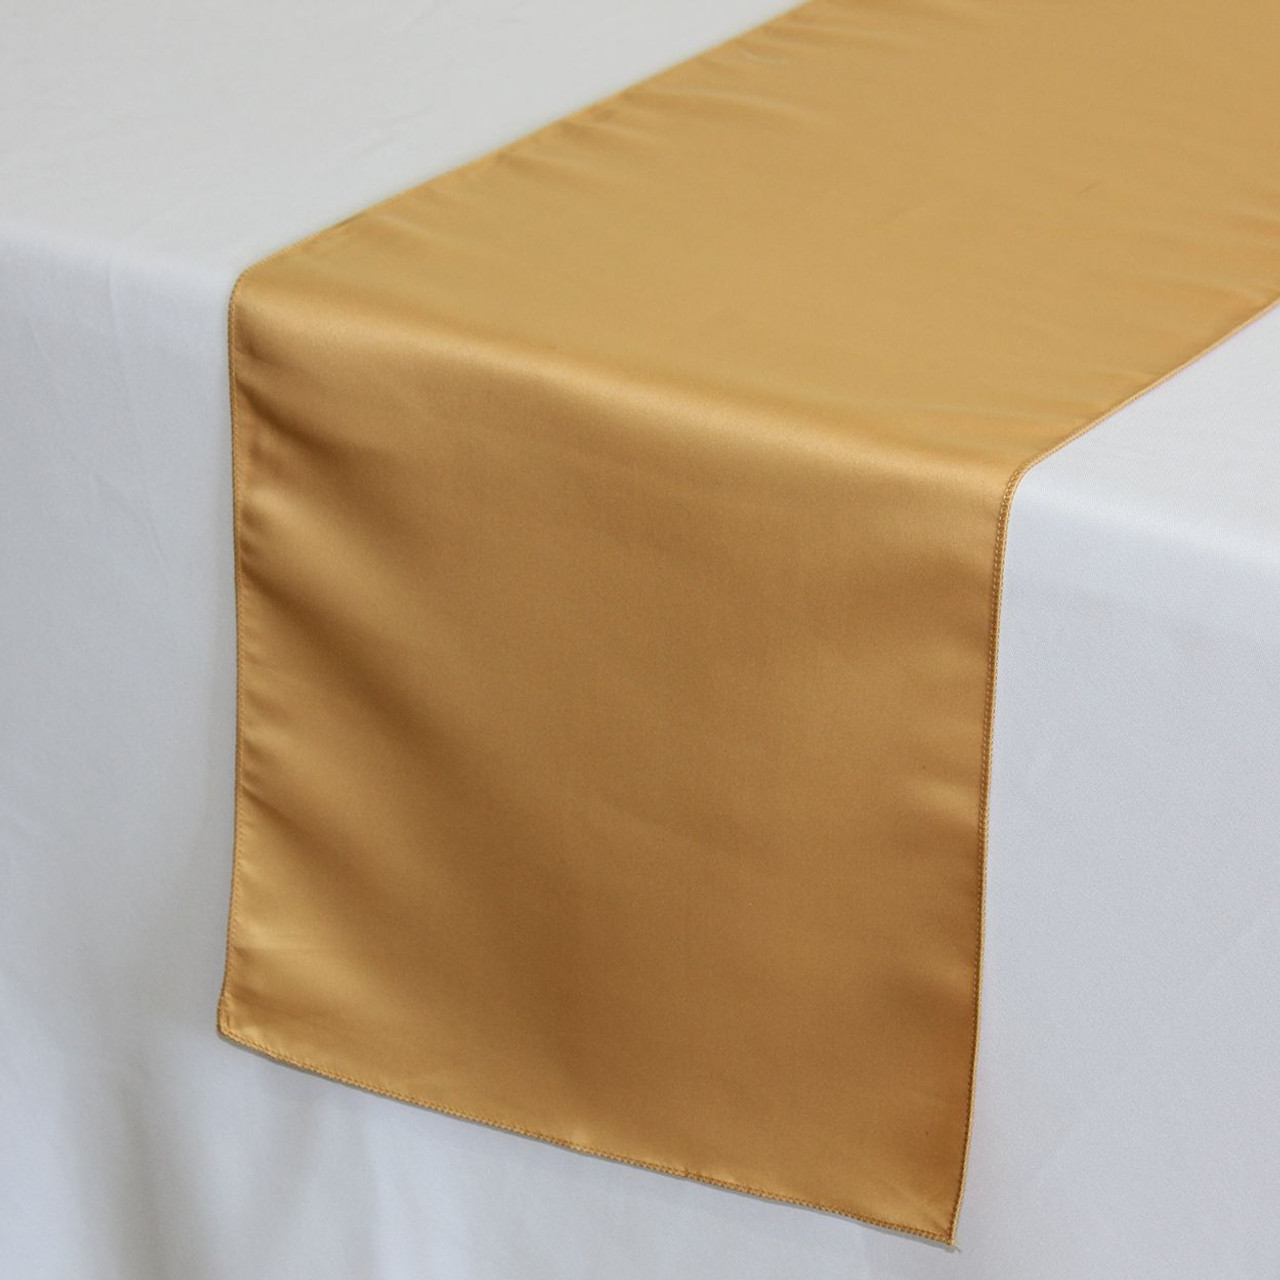 14 X 108 L'amour Satin Table Runner Gold - Chair